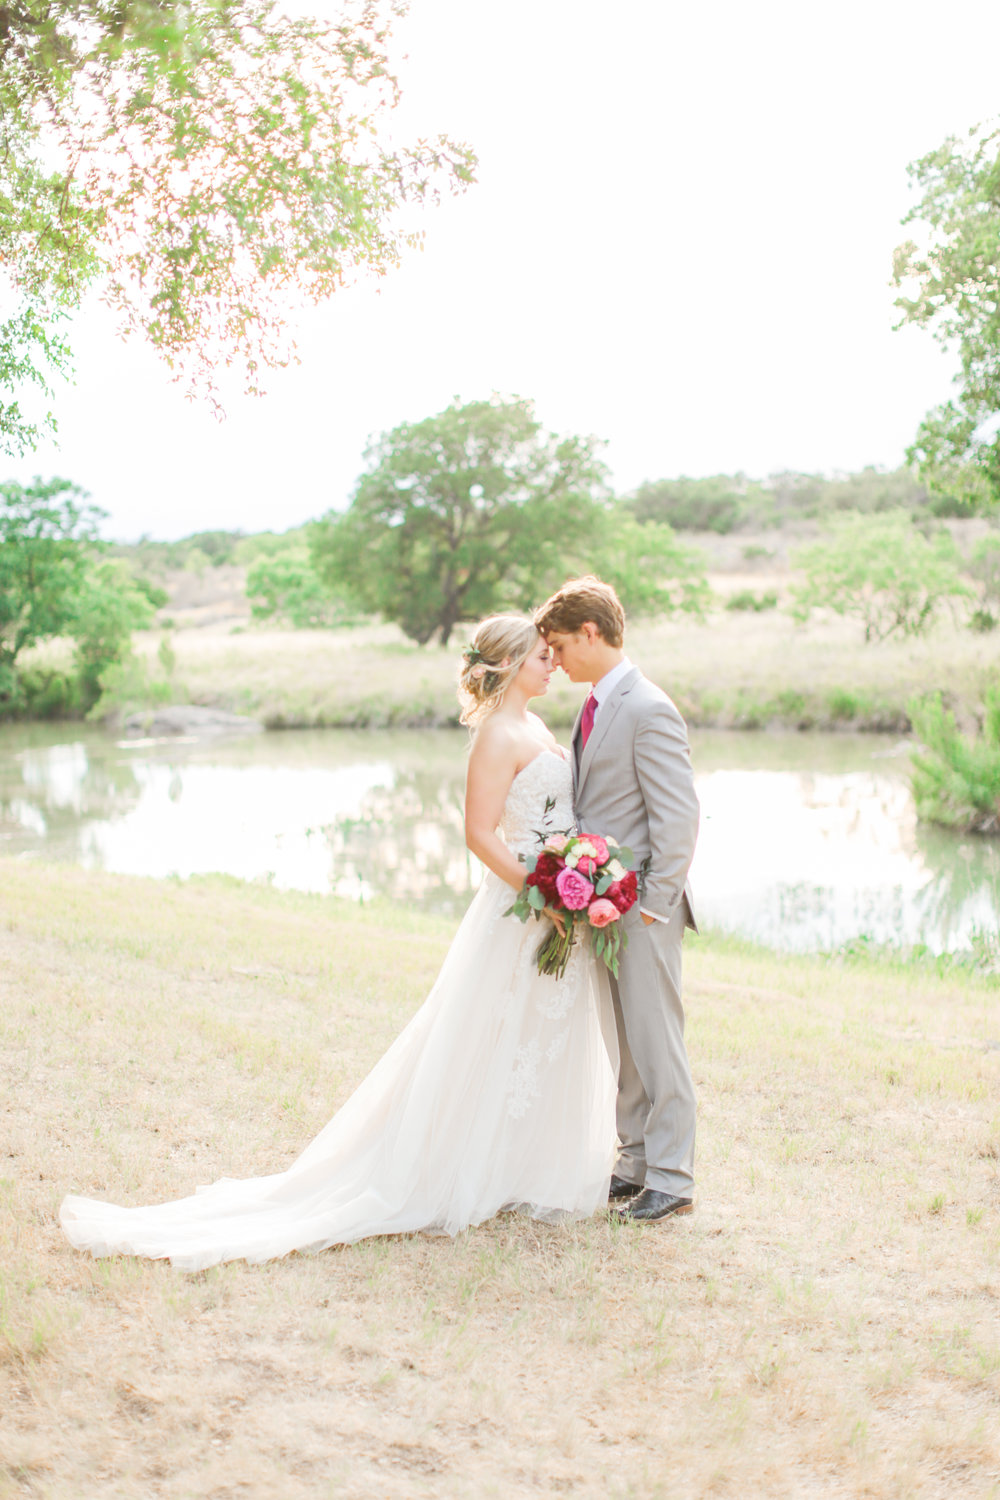 Lewis Wedding Collection - Shara Jo Photography-77.jpg